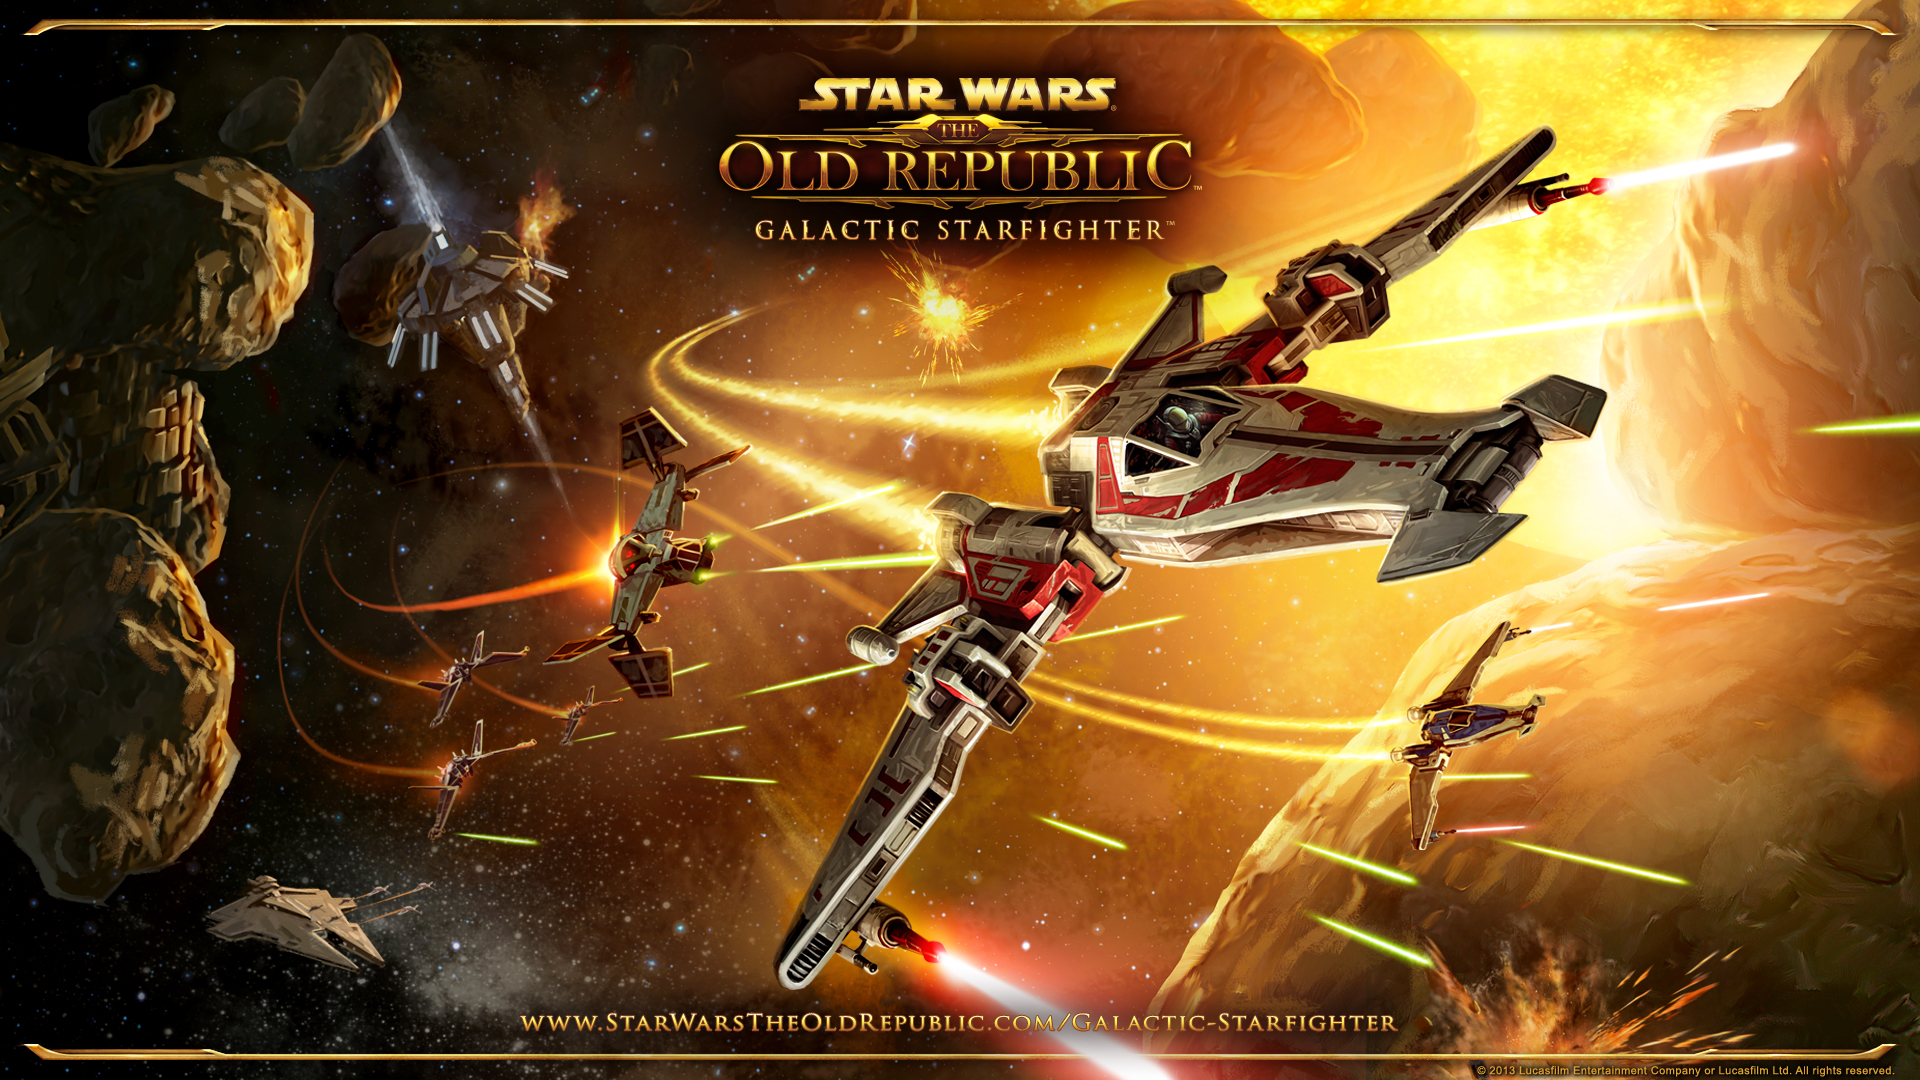 swtor wallpaper jedi knight